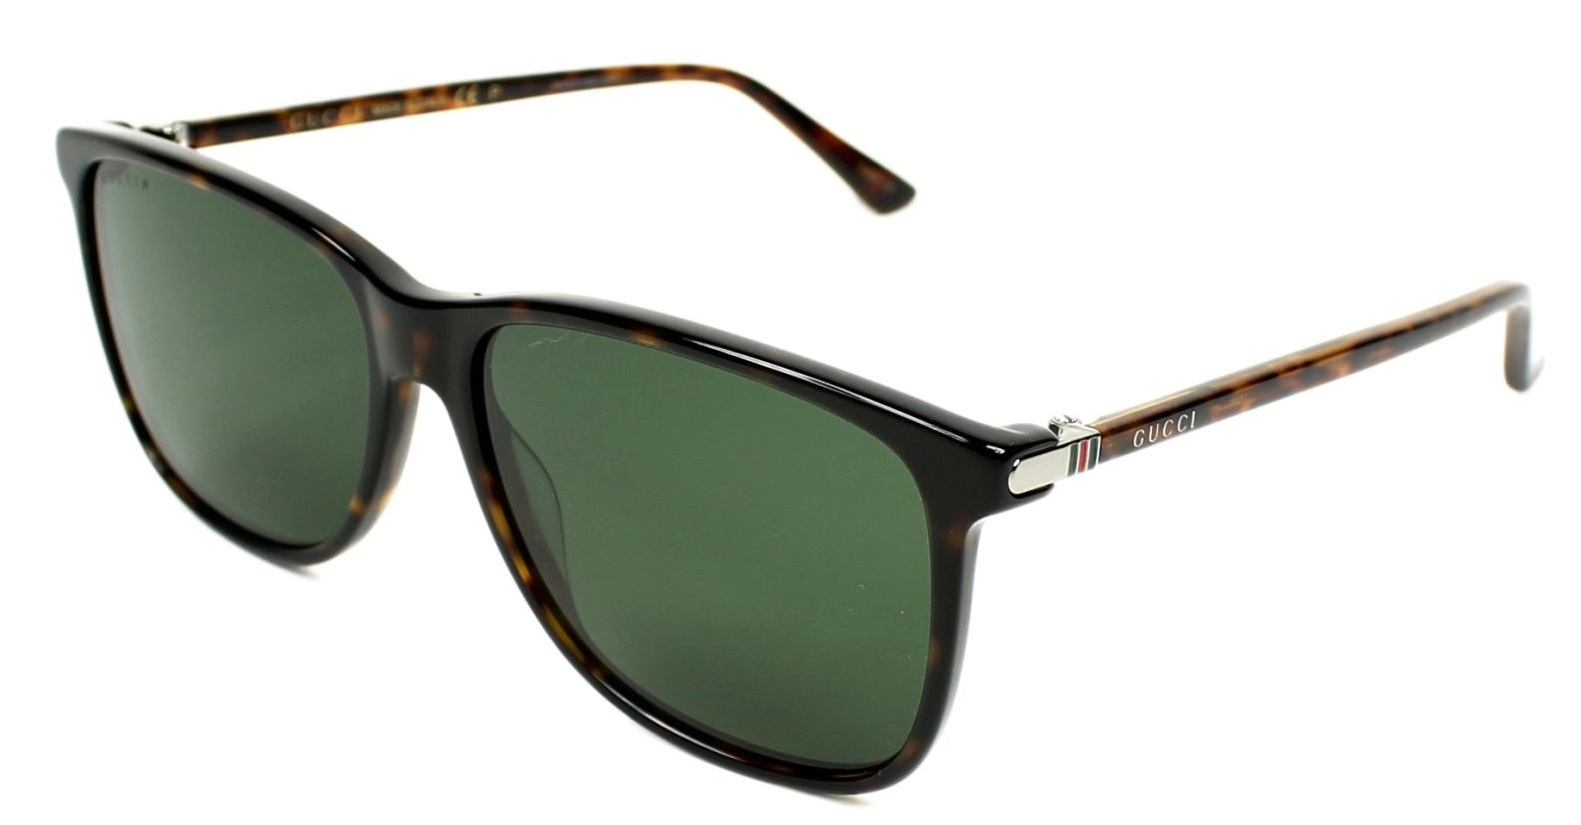 Gucci Havana Square Mens Sunglasses - GG0017S-007